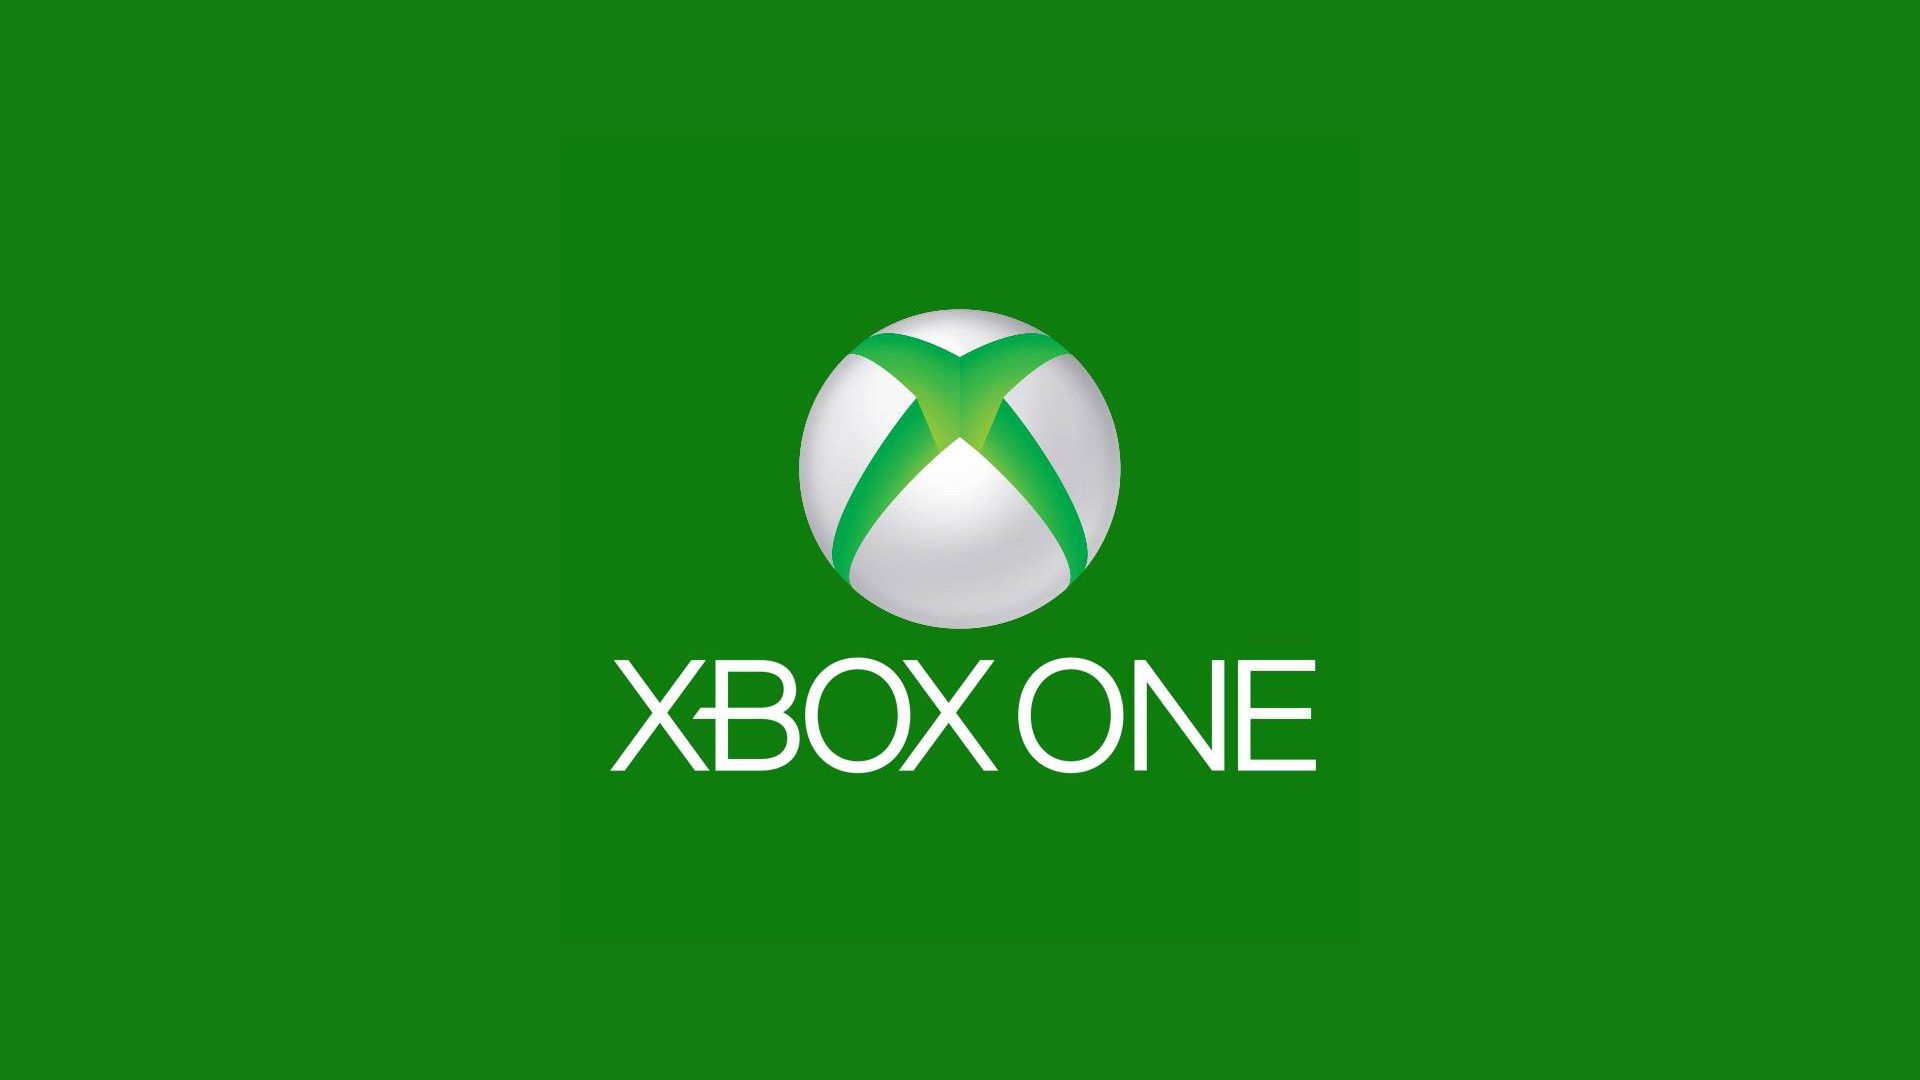 Xbox One Wallpapers in HD 1920x1080